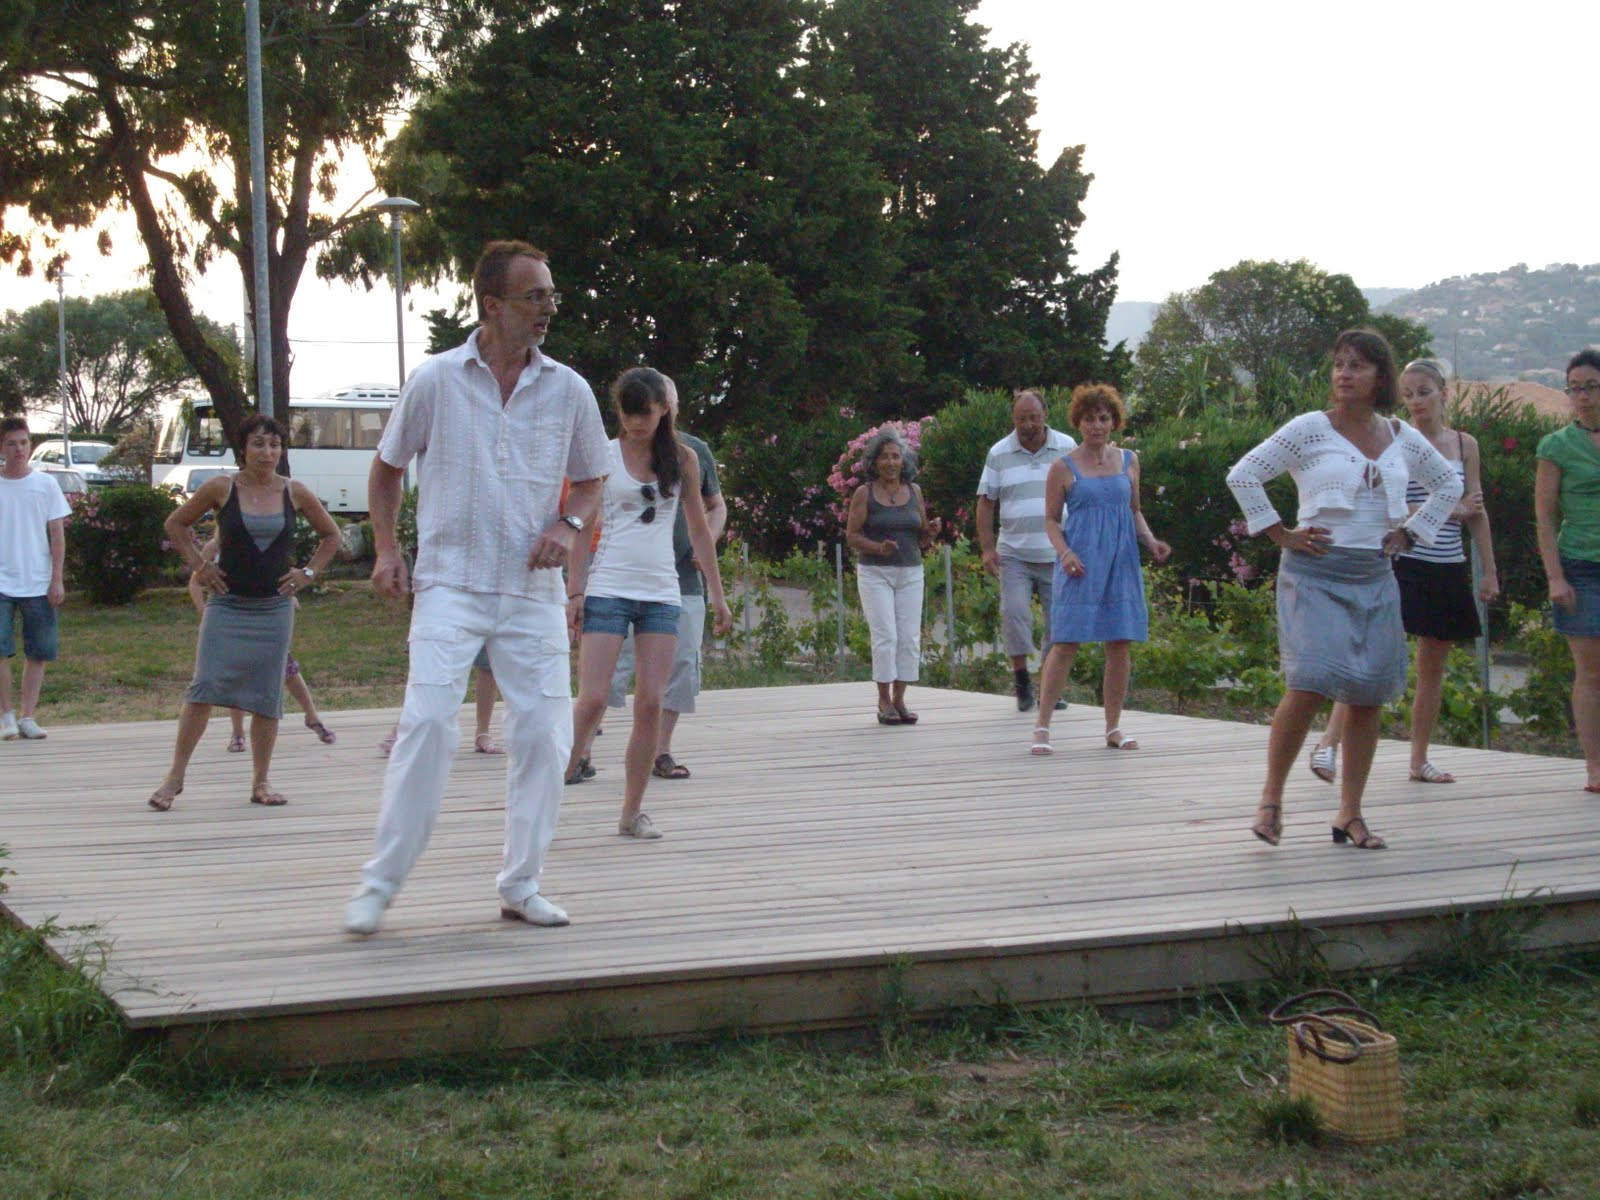 village vacances touristra la manne  alors on danse